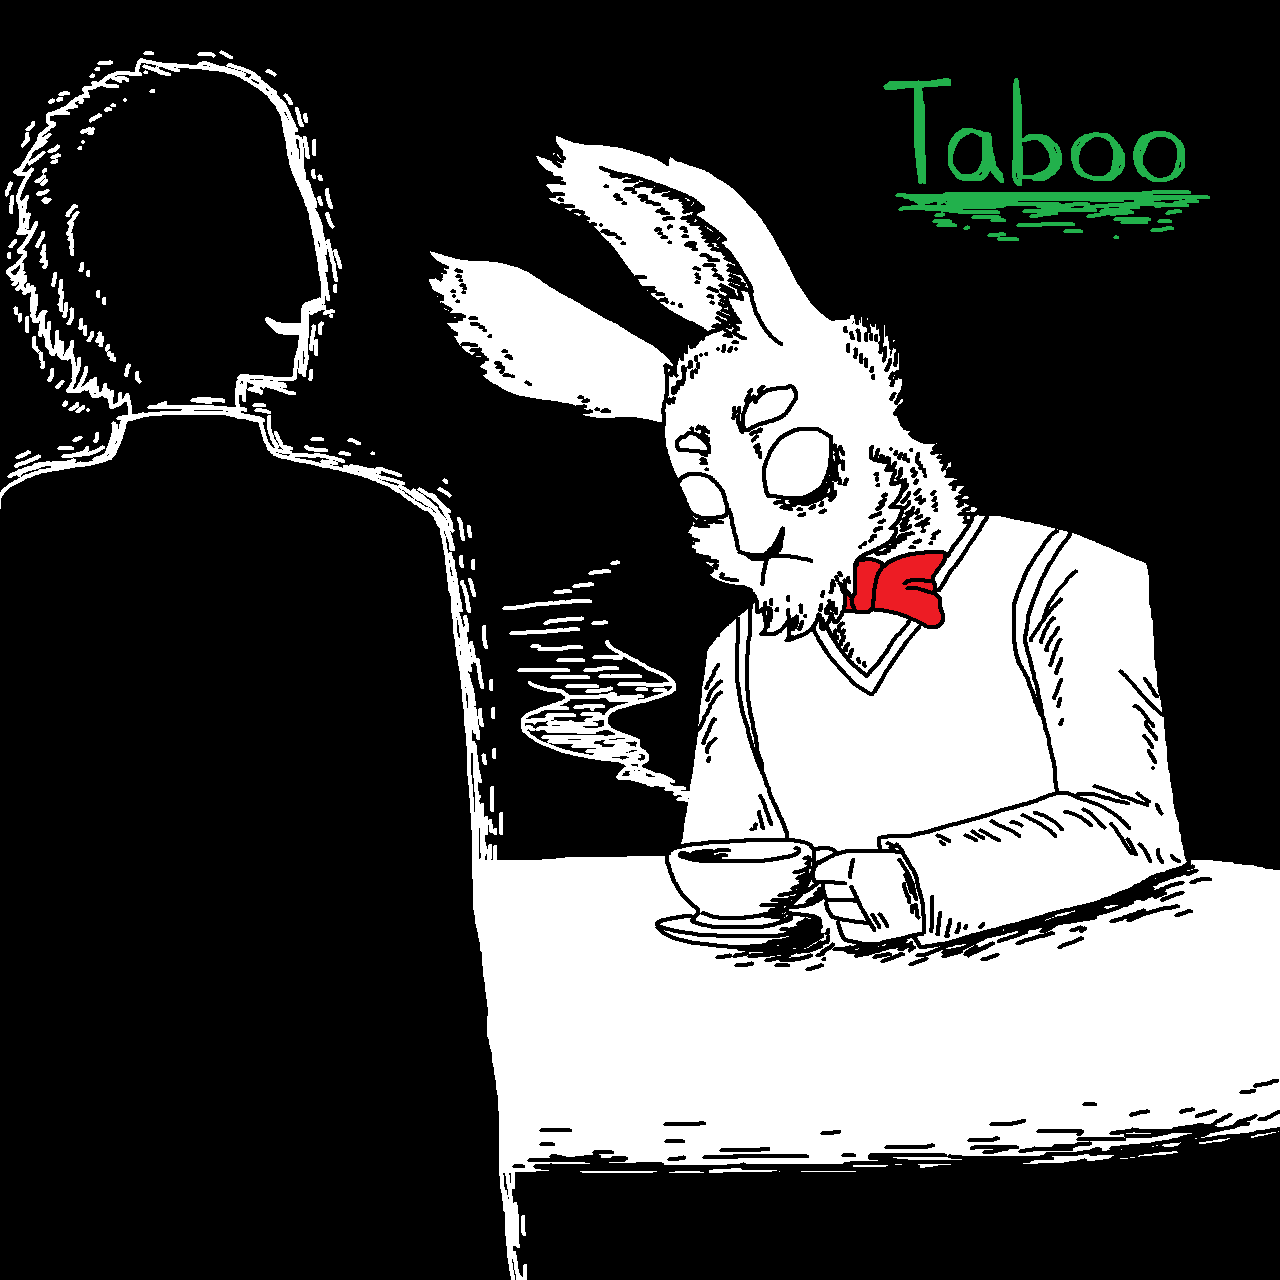 Taboo (MS Paint)